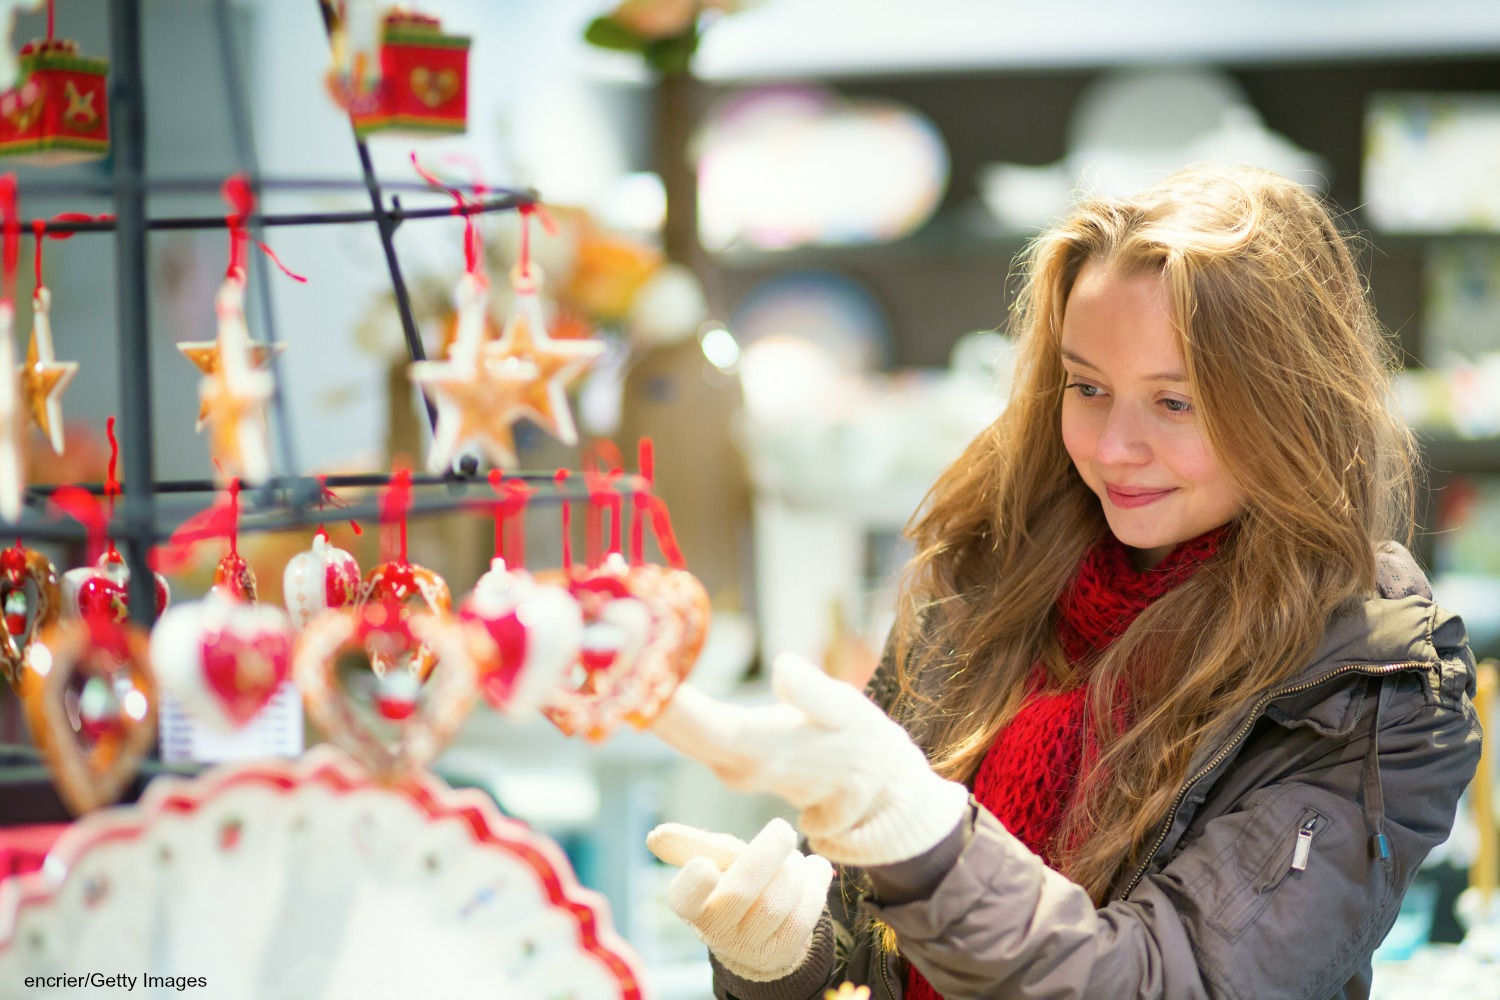 Girl admiring ornaments while enjoying Christmas in Savannah, GA